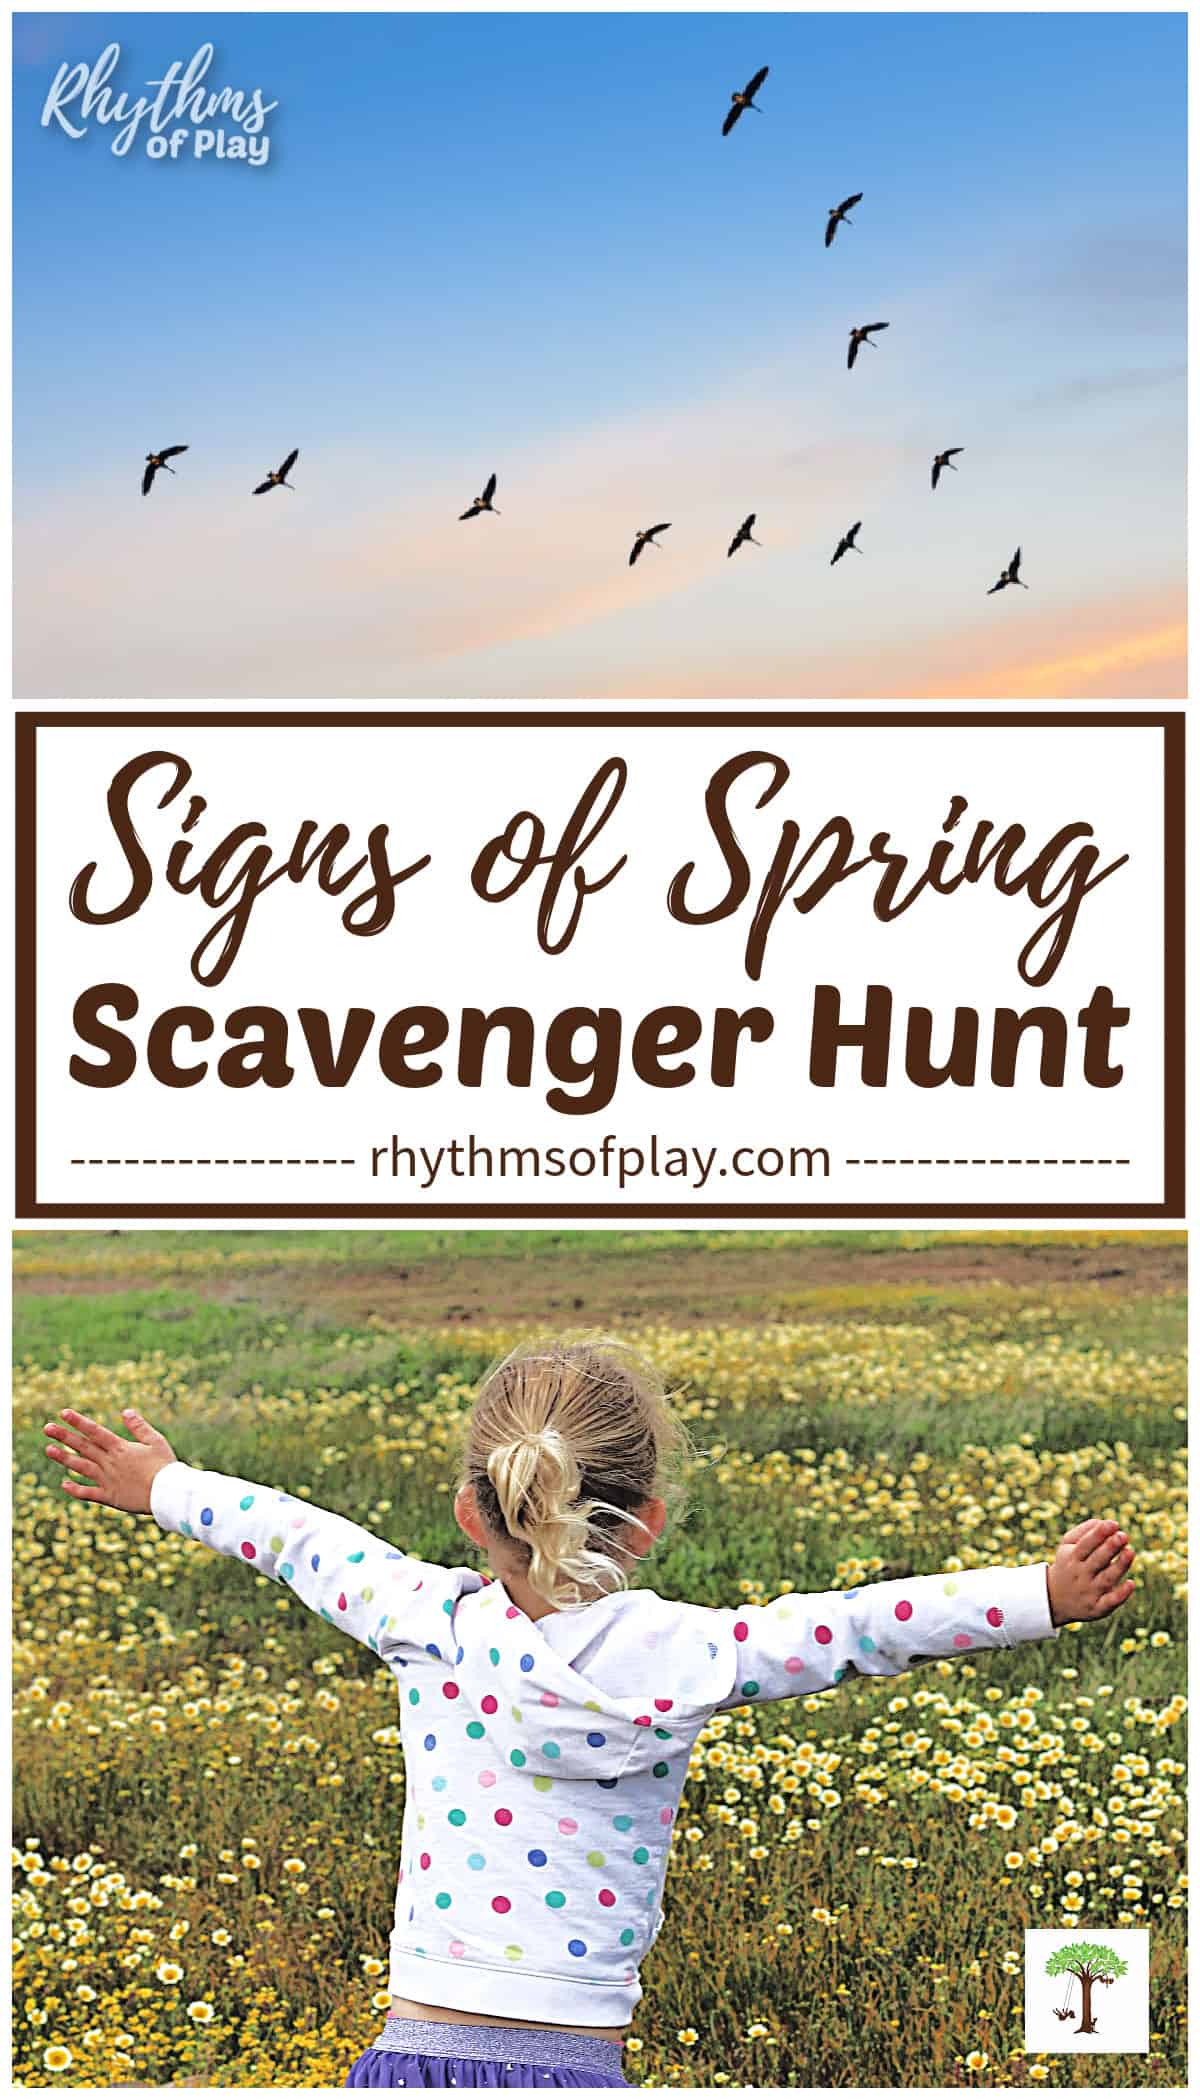 signs of spring scavenger hunt - migrating birds and flowers